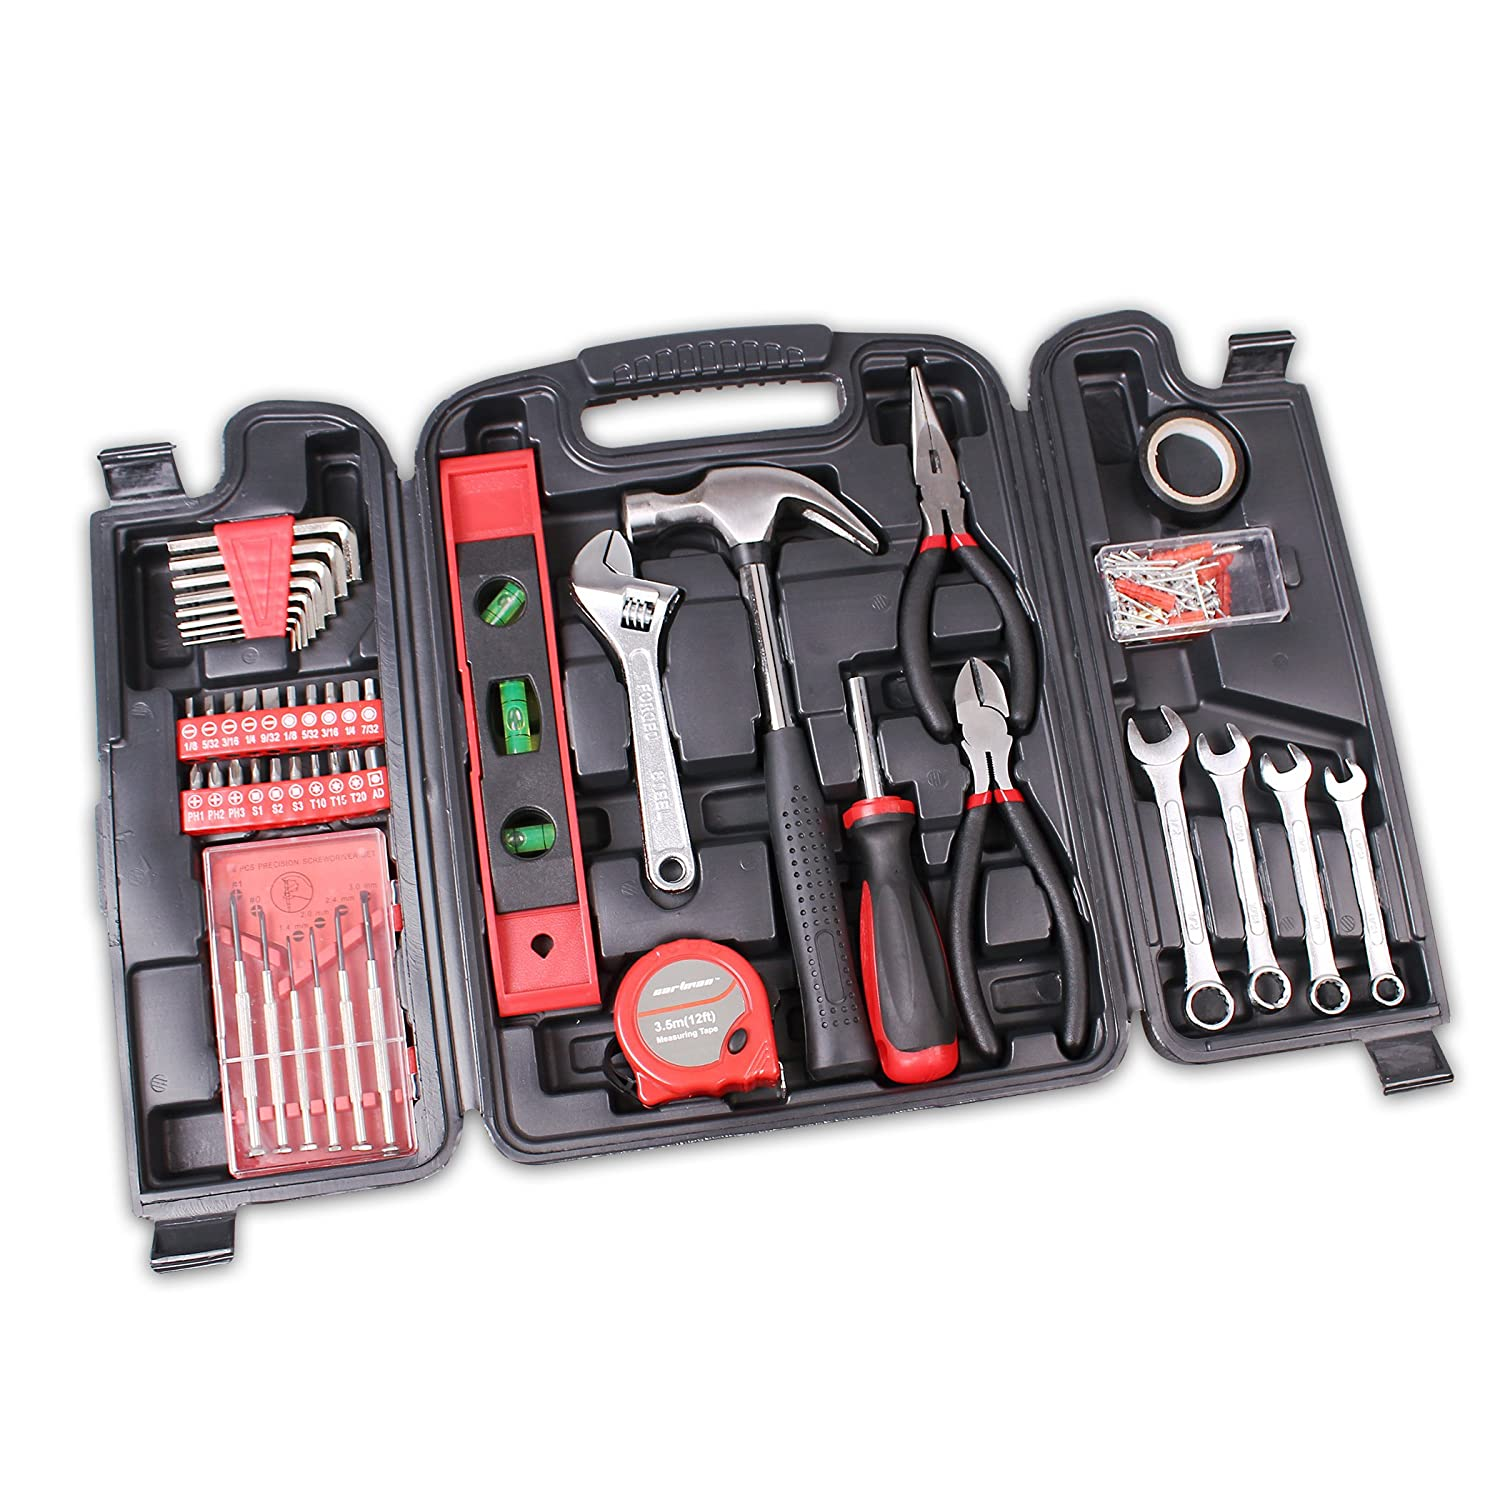 Cartman 136 Piece Tool Set General Household Hand Tool Kit With Plastic Toolbox Storage Case